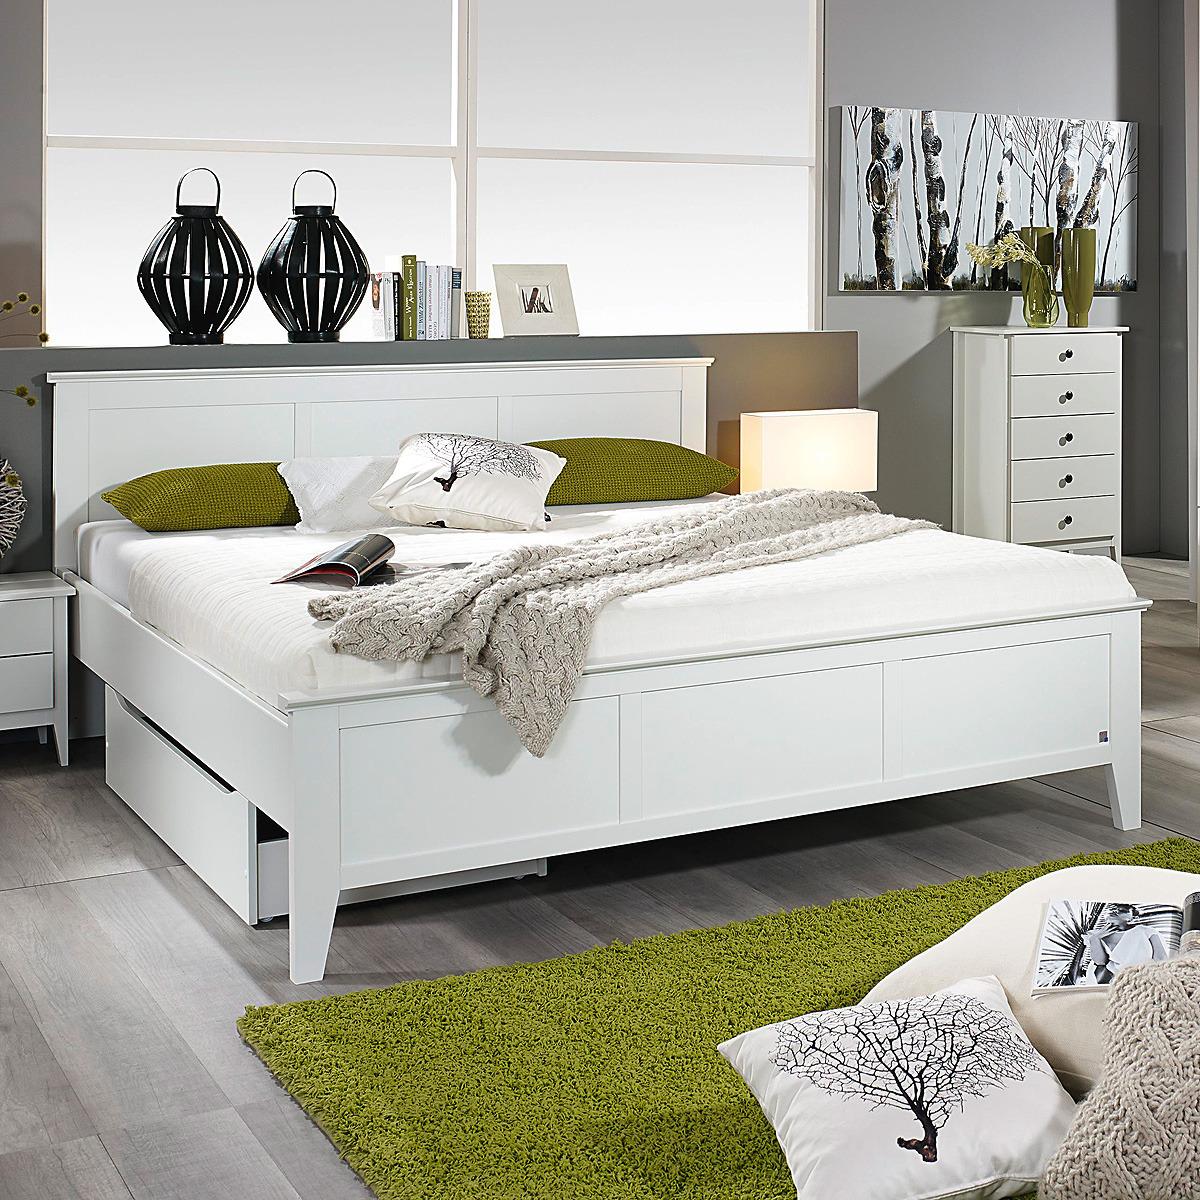 bett rosenheim schlafzimmerbett bettgestell doppelbett in wei 160x200 ebay. Black Bedroom Furniture Sets. Home Design Ideas